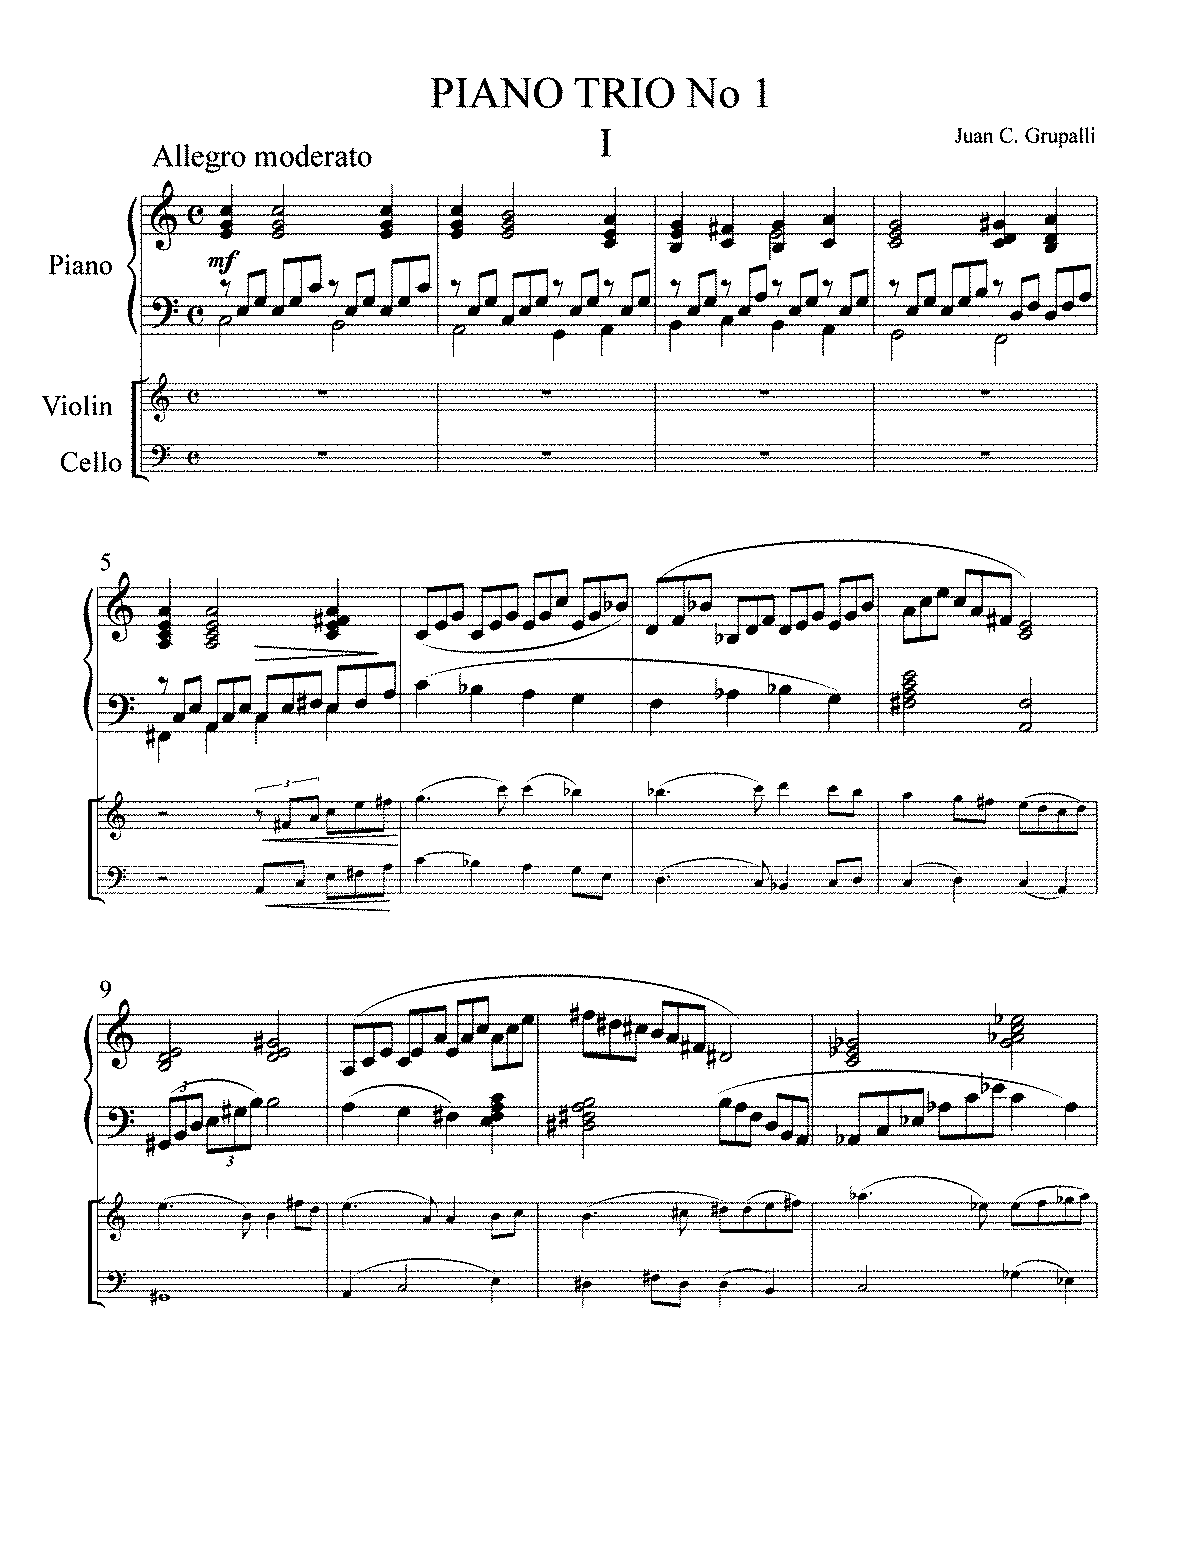 PMLP523707-PIANO TRIO No 1 Full Score.pdf